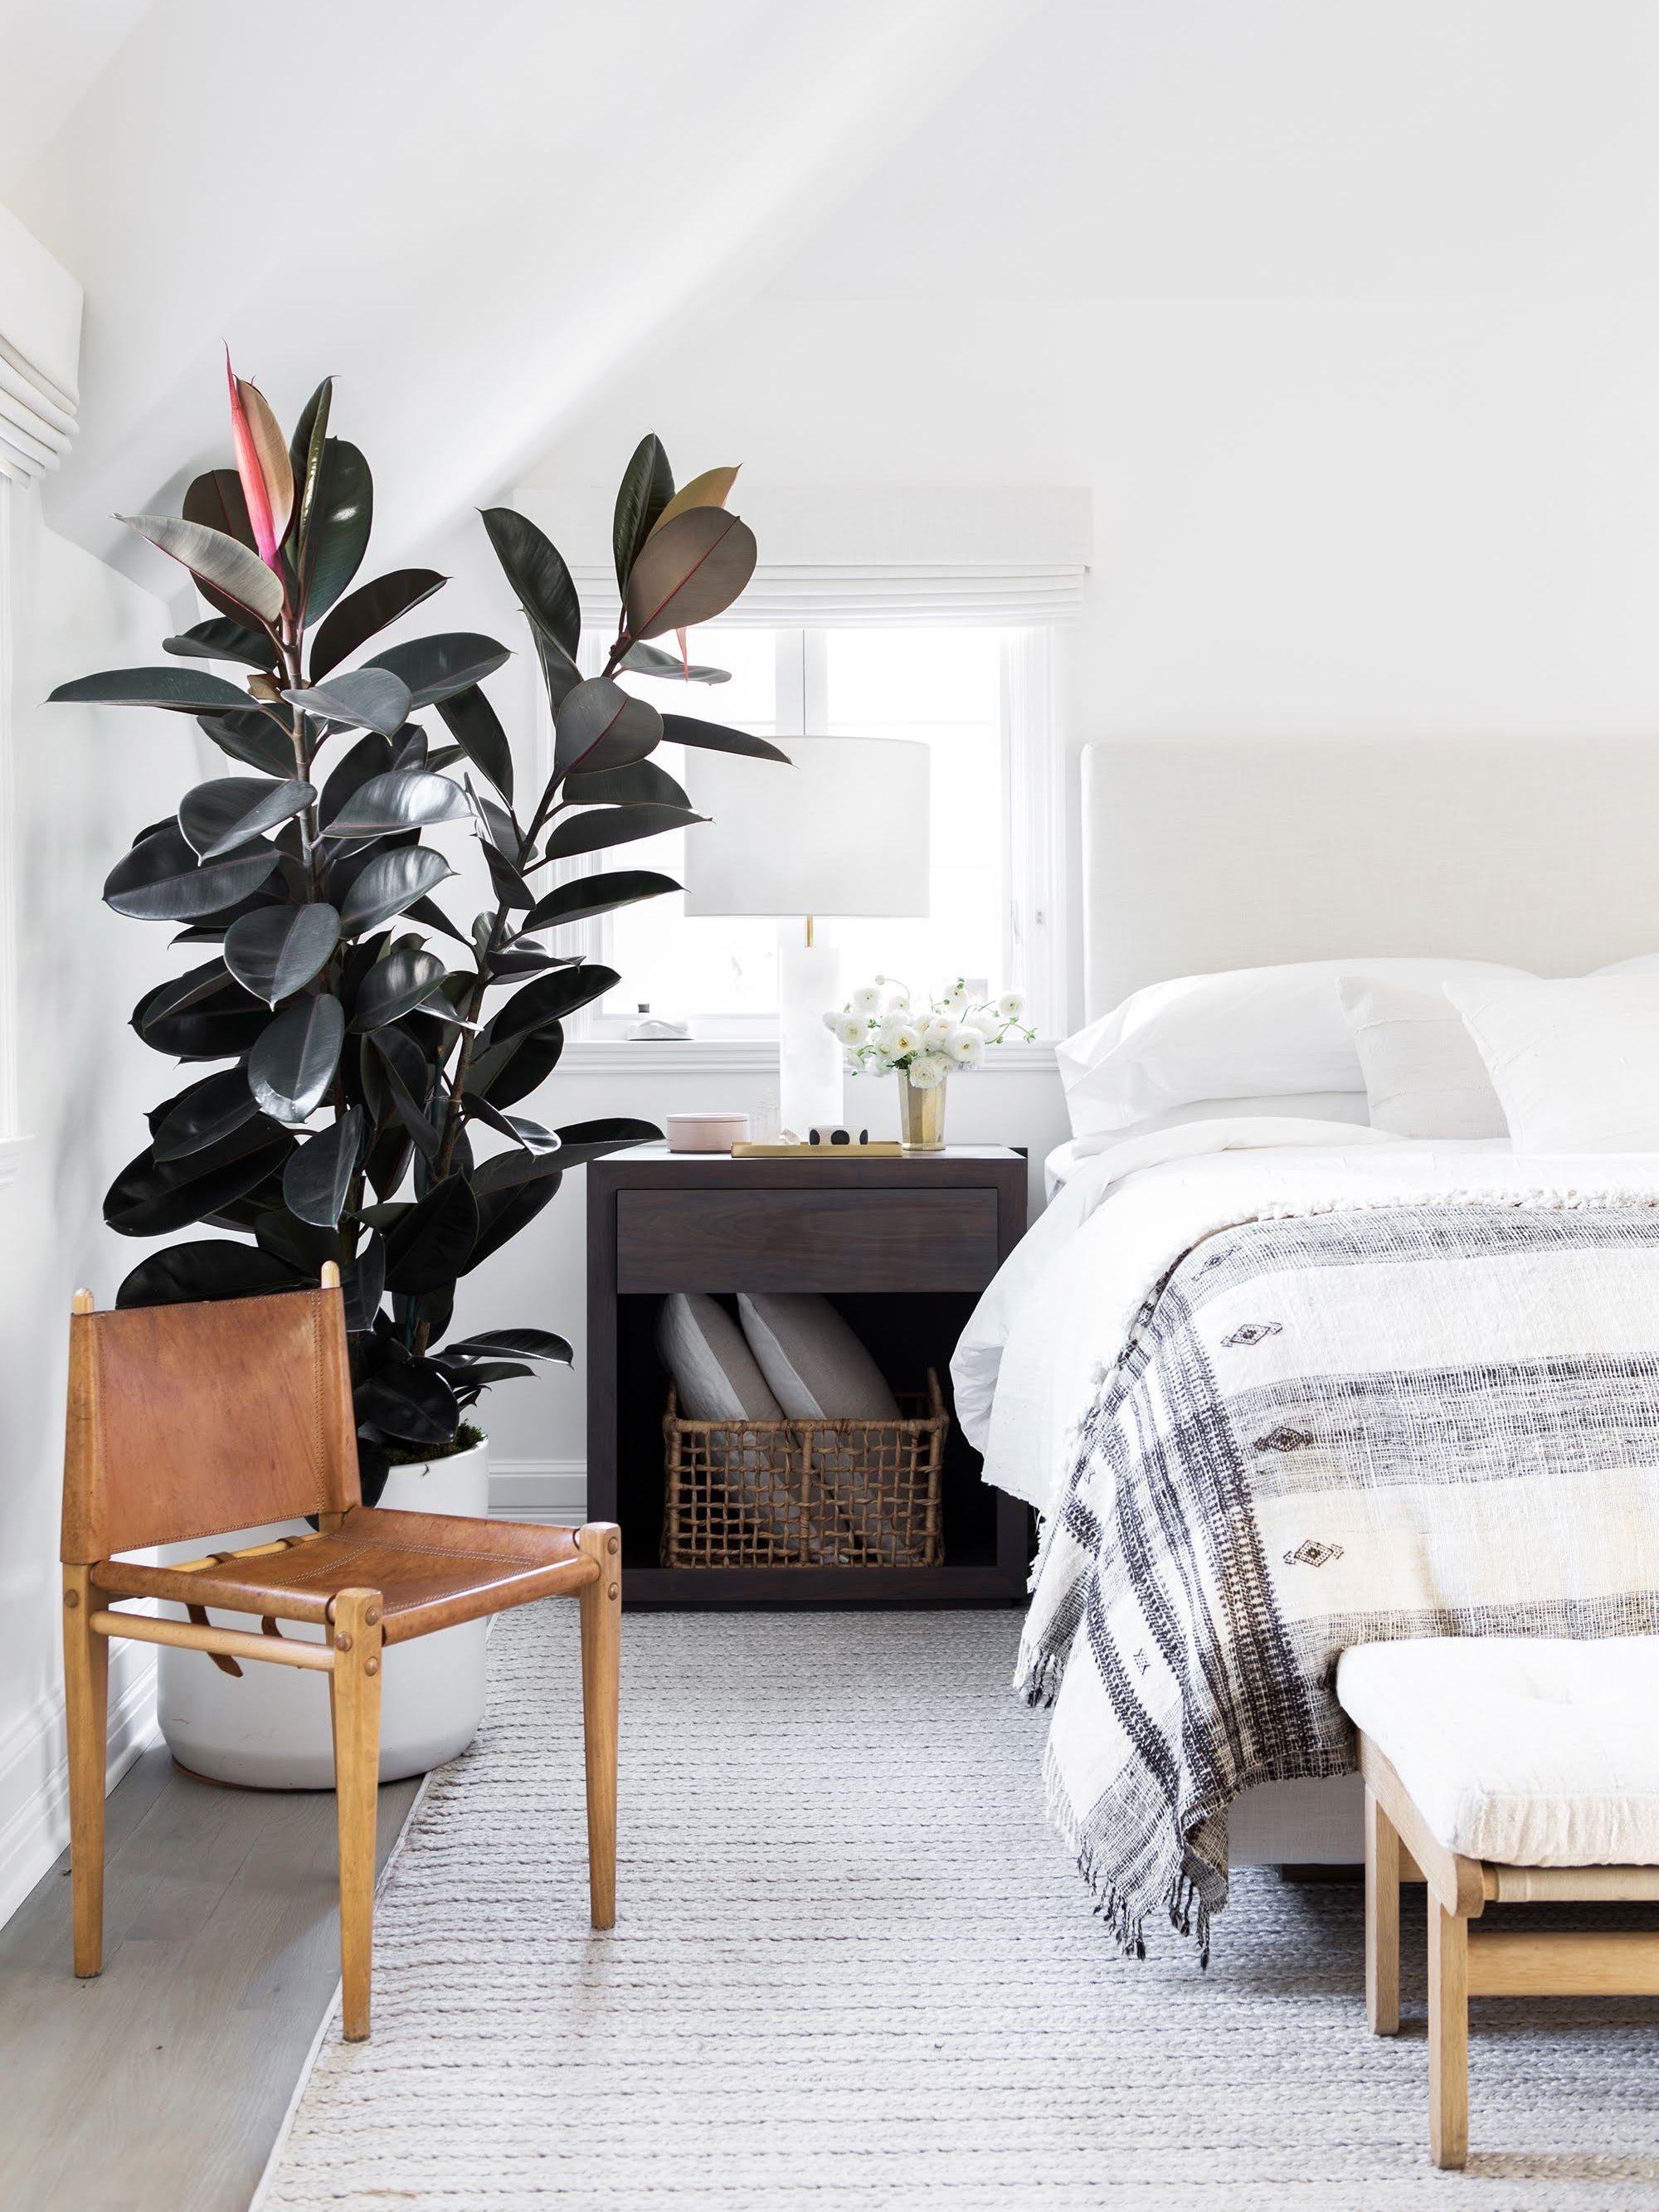 White bedroom with large rubber plant